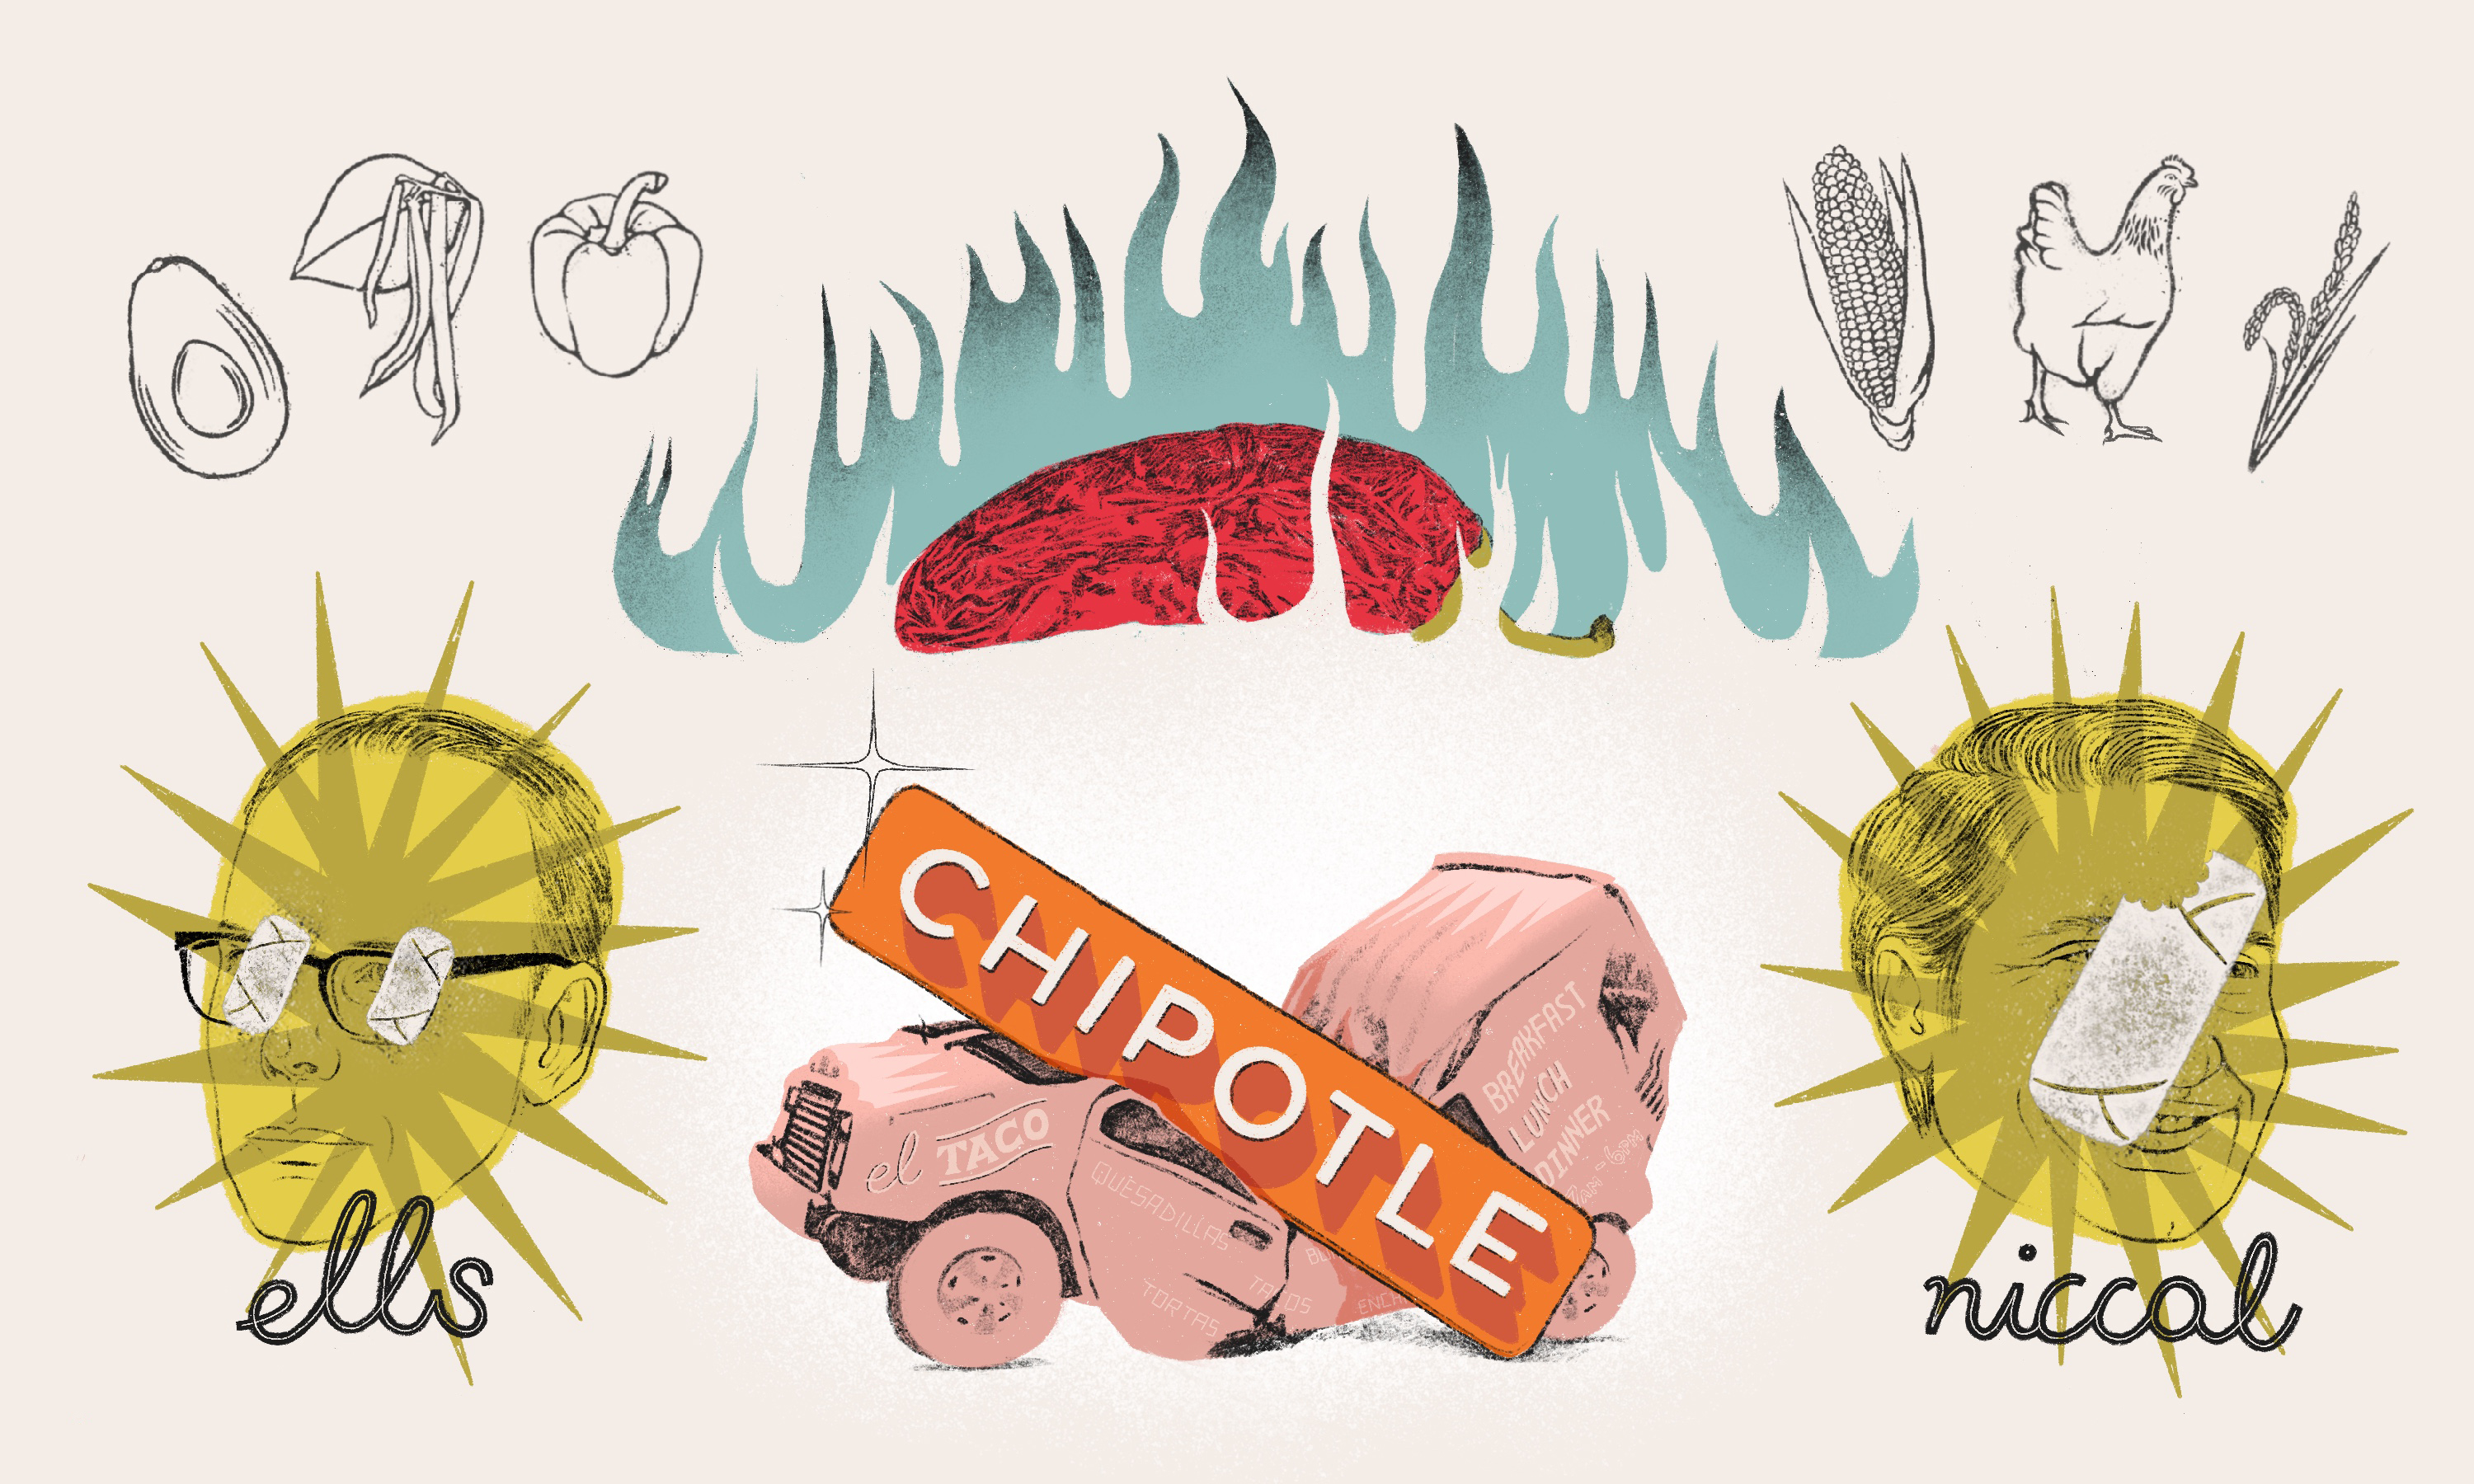 There Is Only One Burrito in America Now, and That Burrito, Unfortunately, Is Chipotle